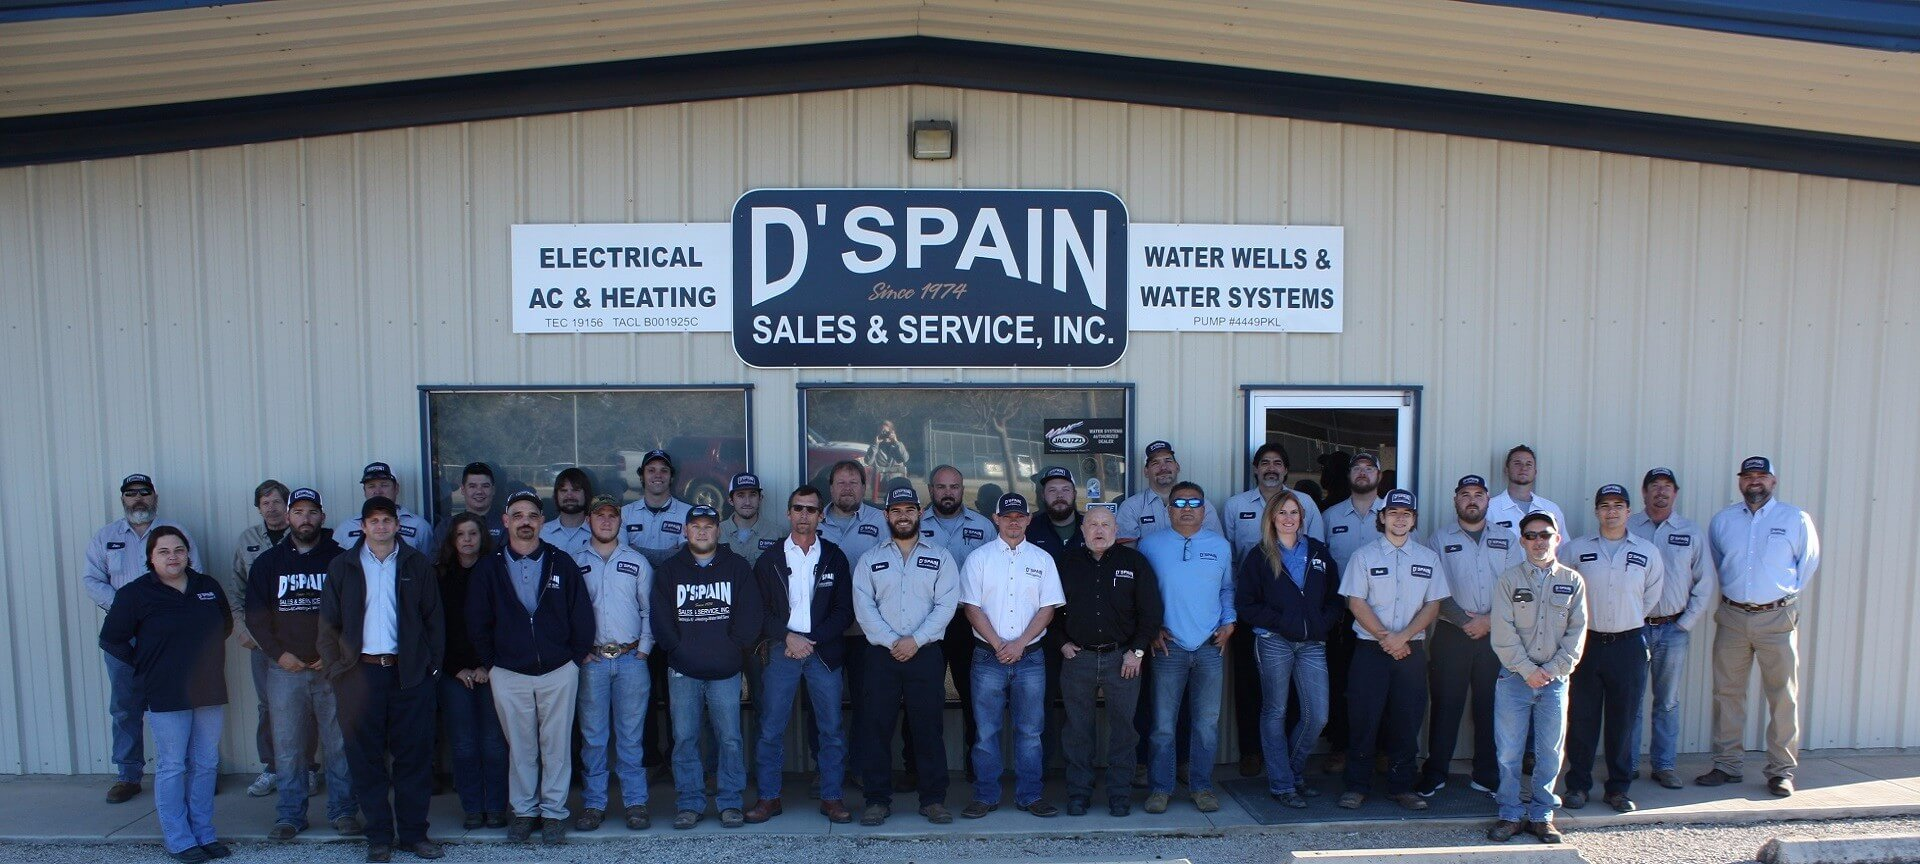 DSpain Sales Service Inc Your HVAC Electrical And Water Well Specialist In Boerne The Surrounding Texas Hill Country